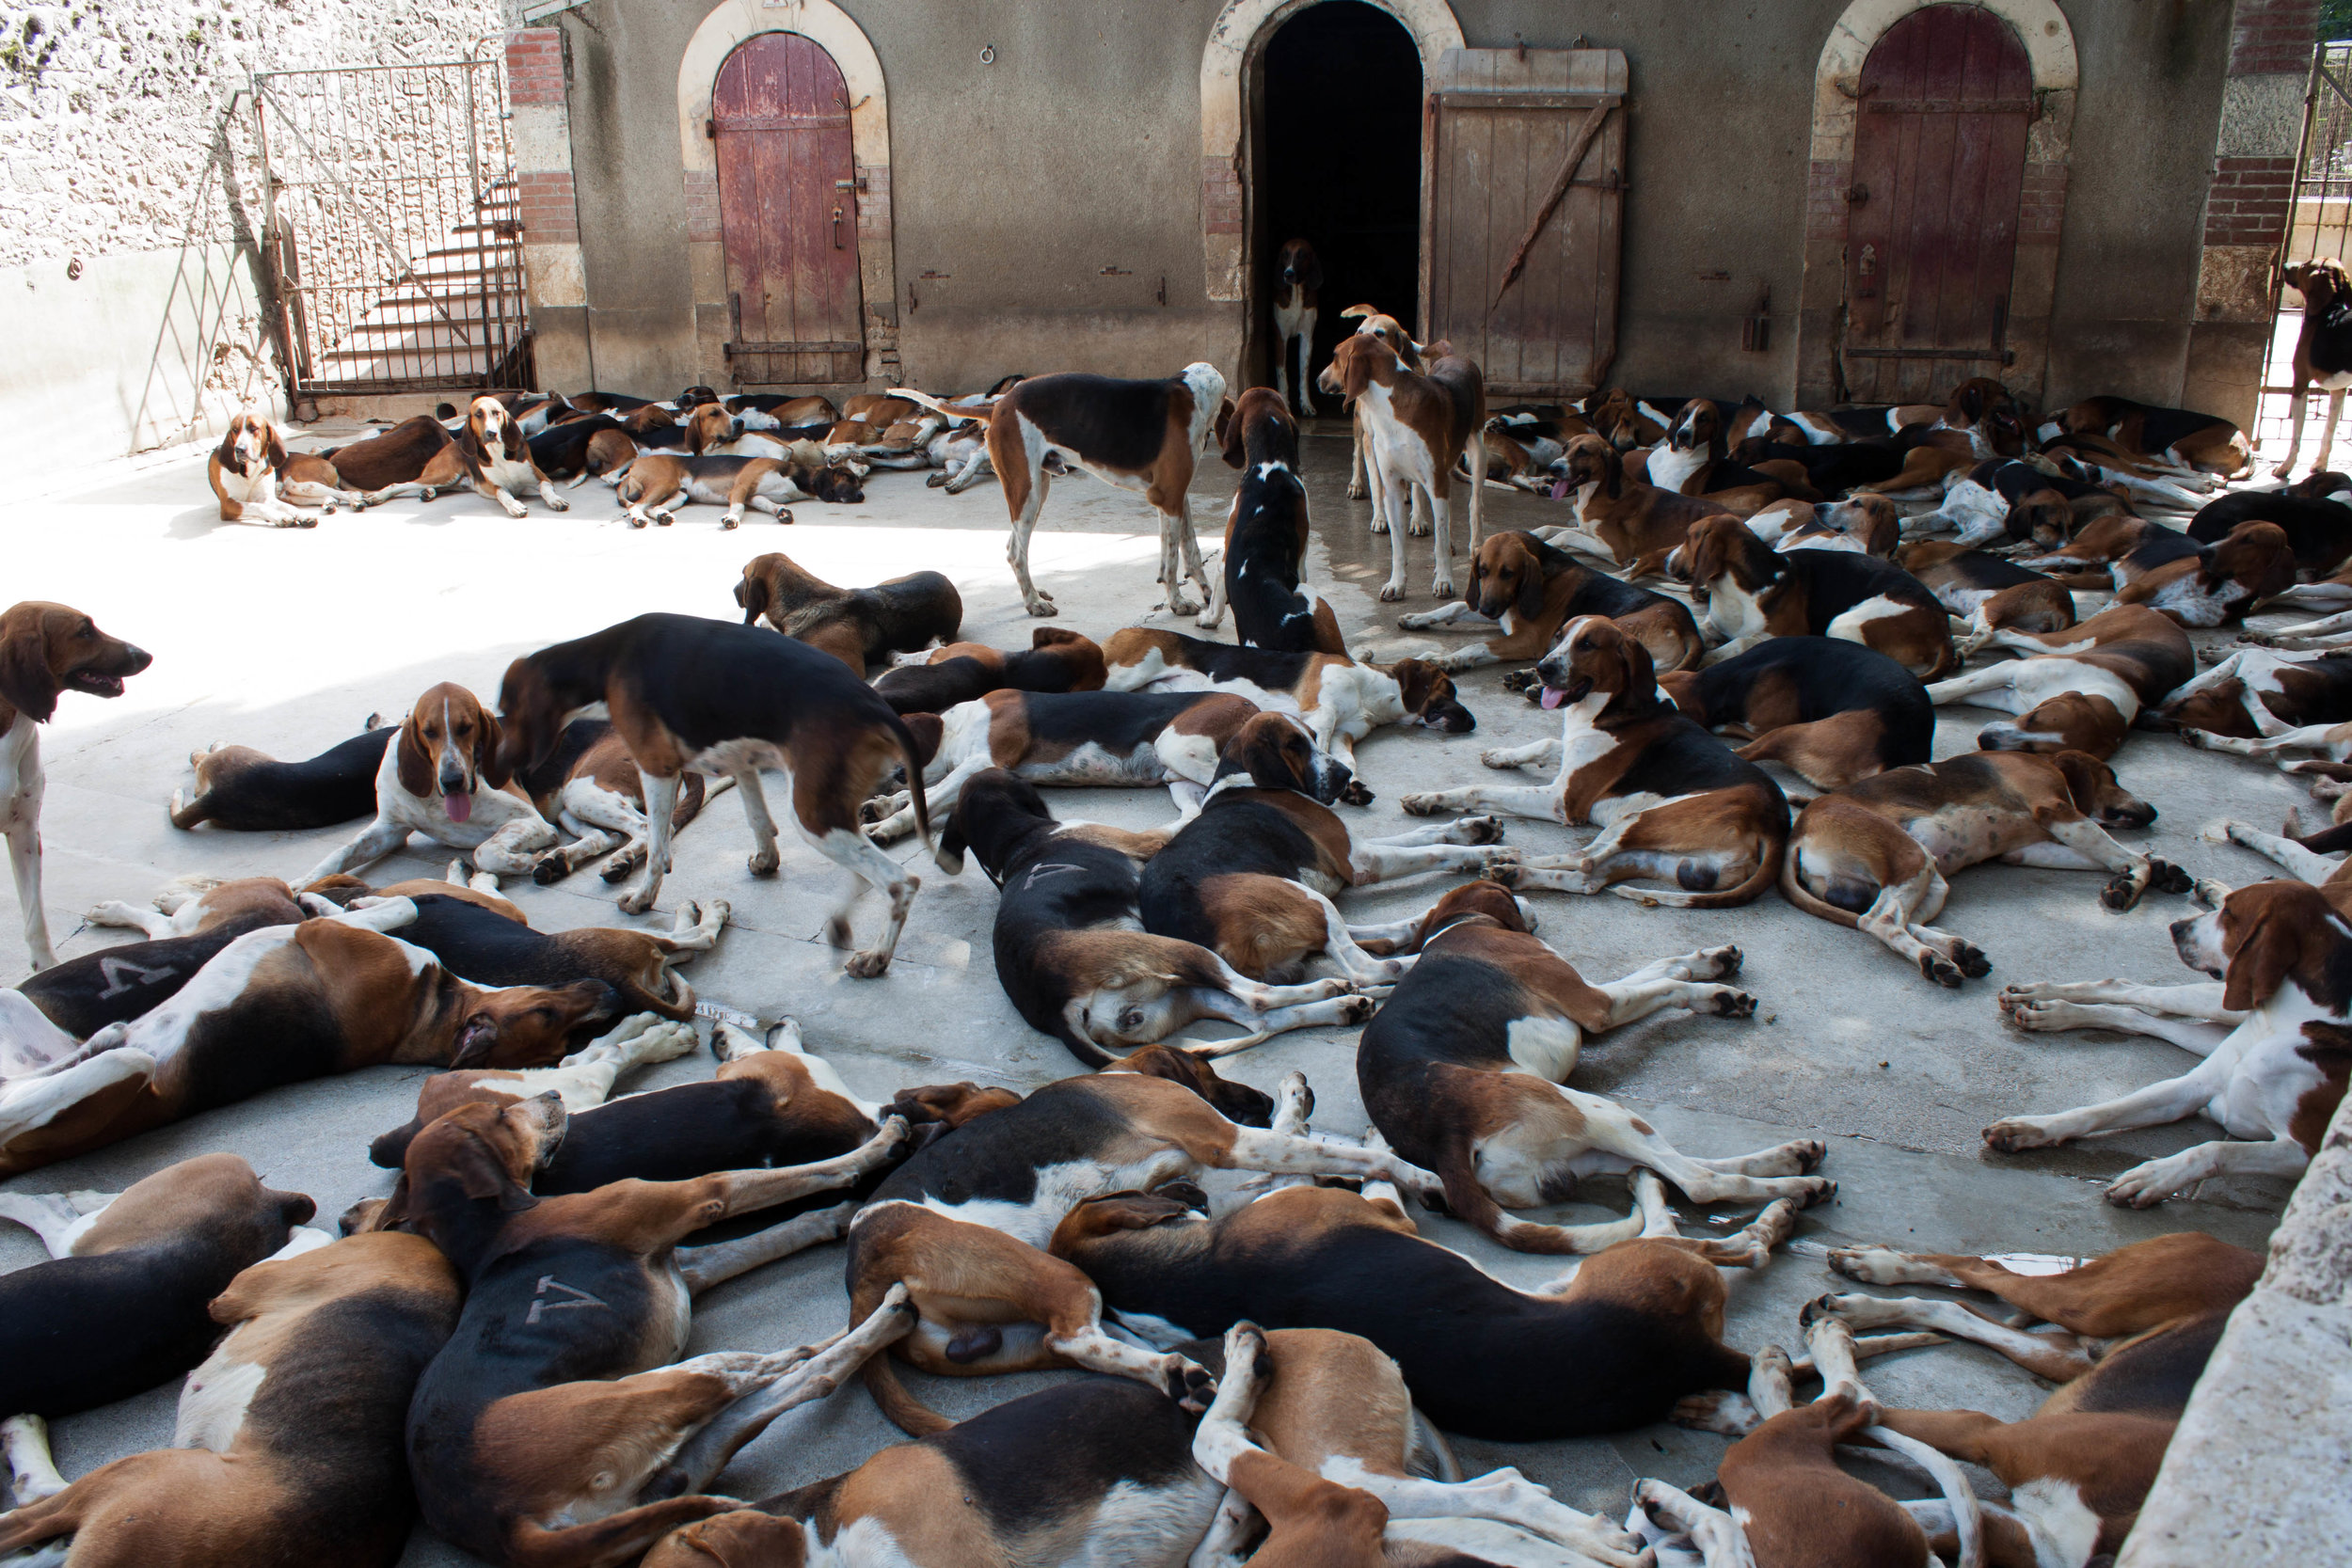 Hunting hounds rest in their kennels at Chateau de Cheverny in Cheverny, France, August 2012.